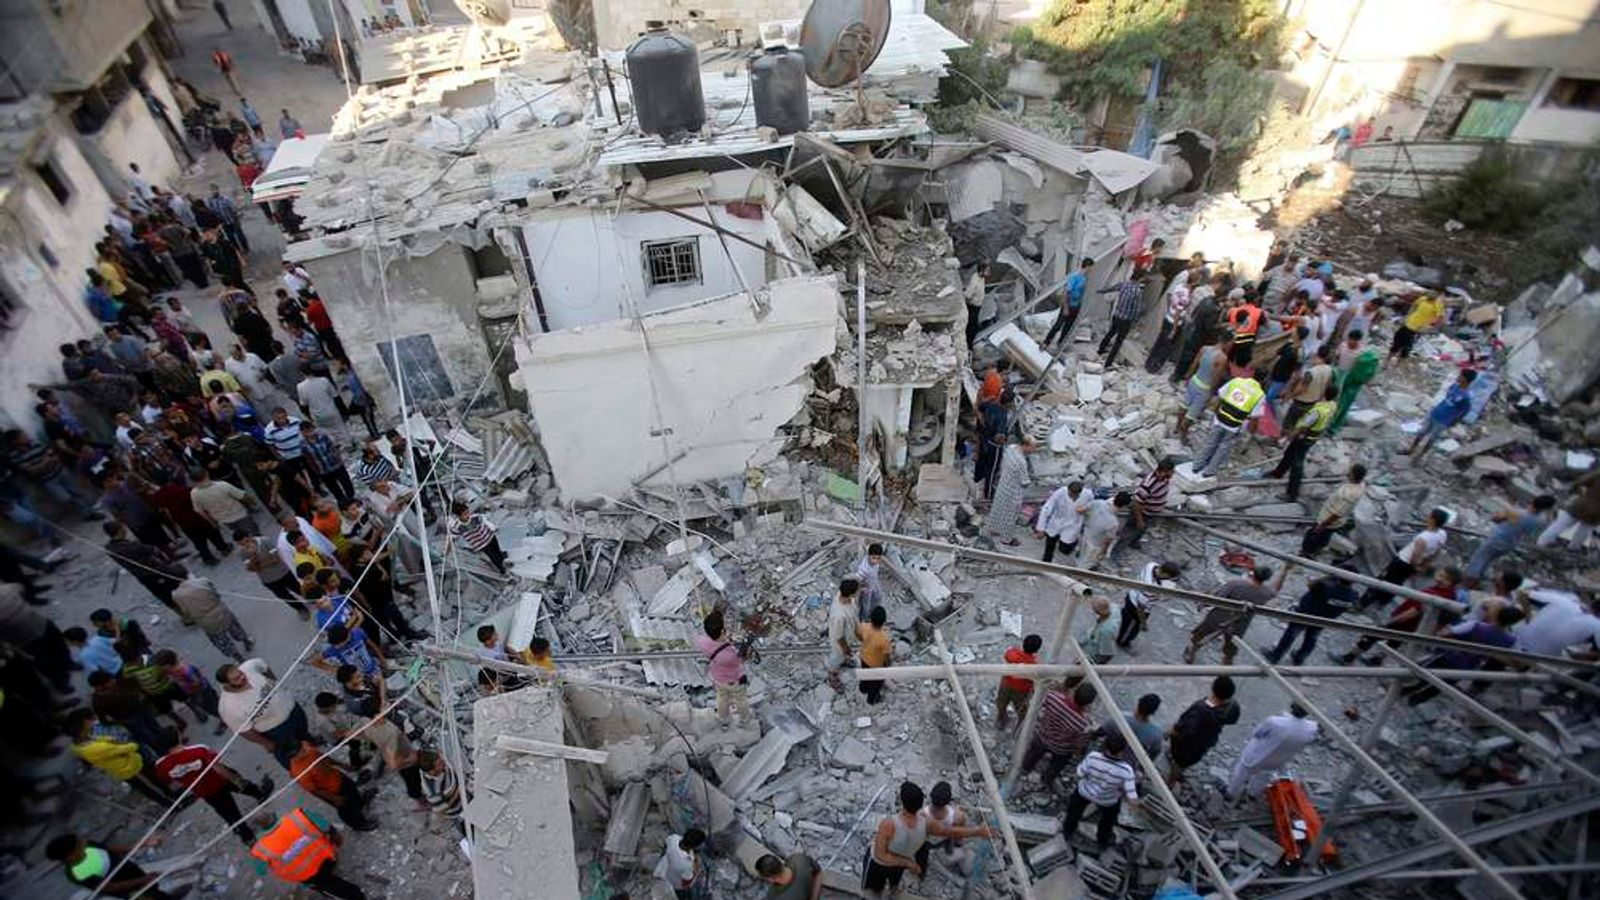 Rescue workers search for victims as Palestinians gather around the wreckage of a house in Rafah.